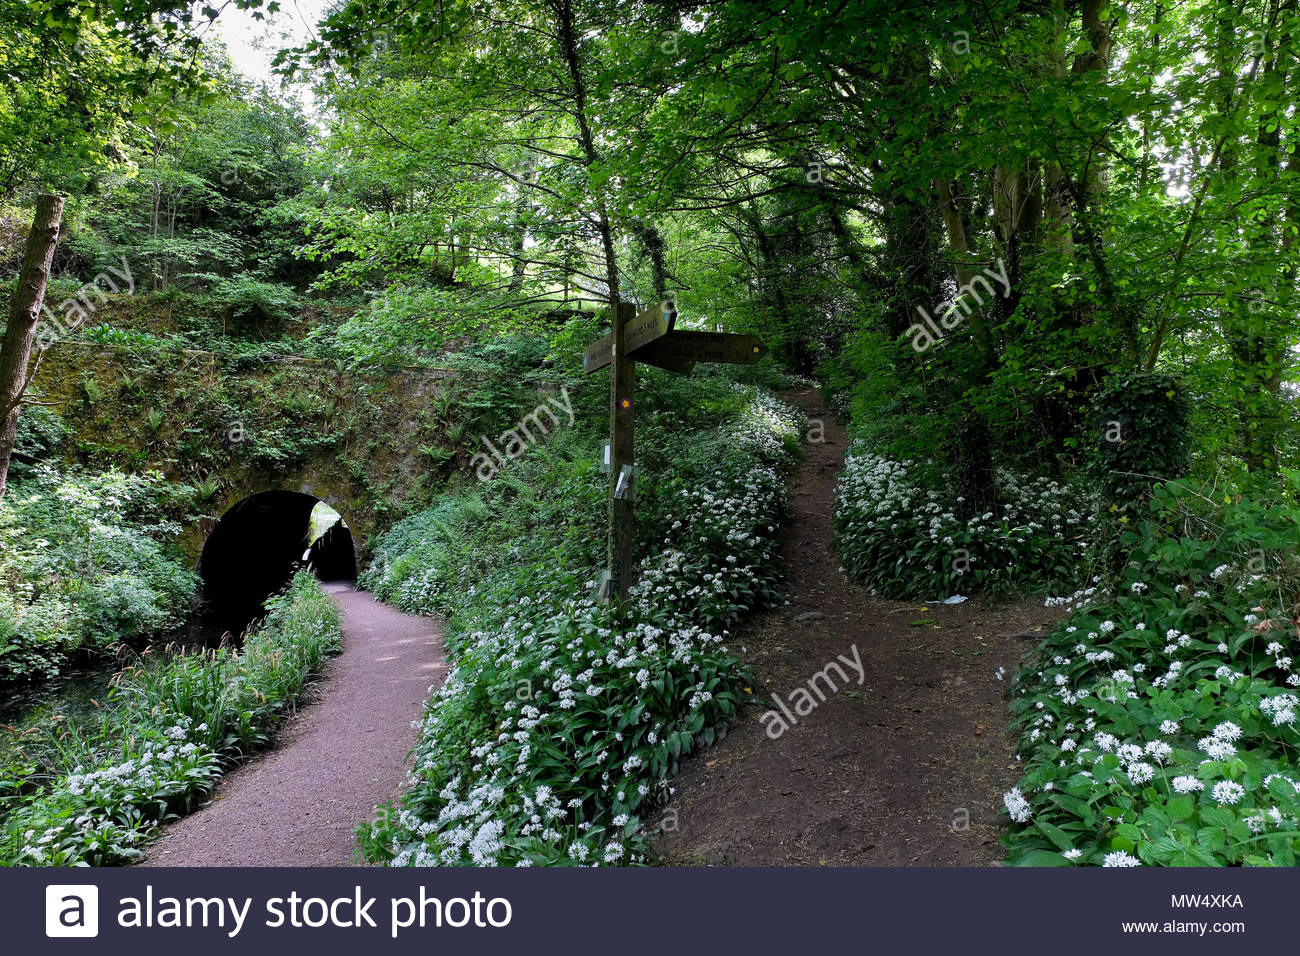 Canal tunnel, footpaths and wild garlic, Derbyshire, UK. - Stock Image